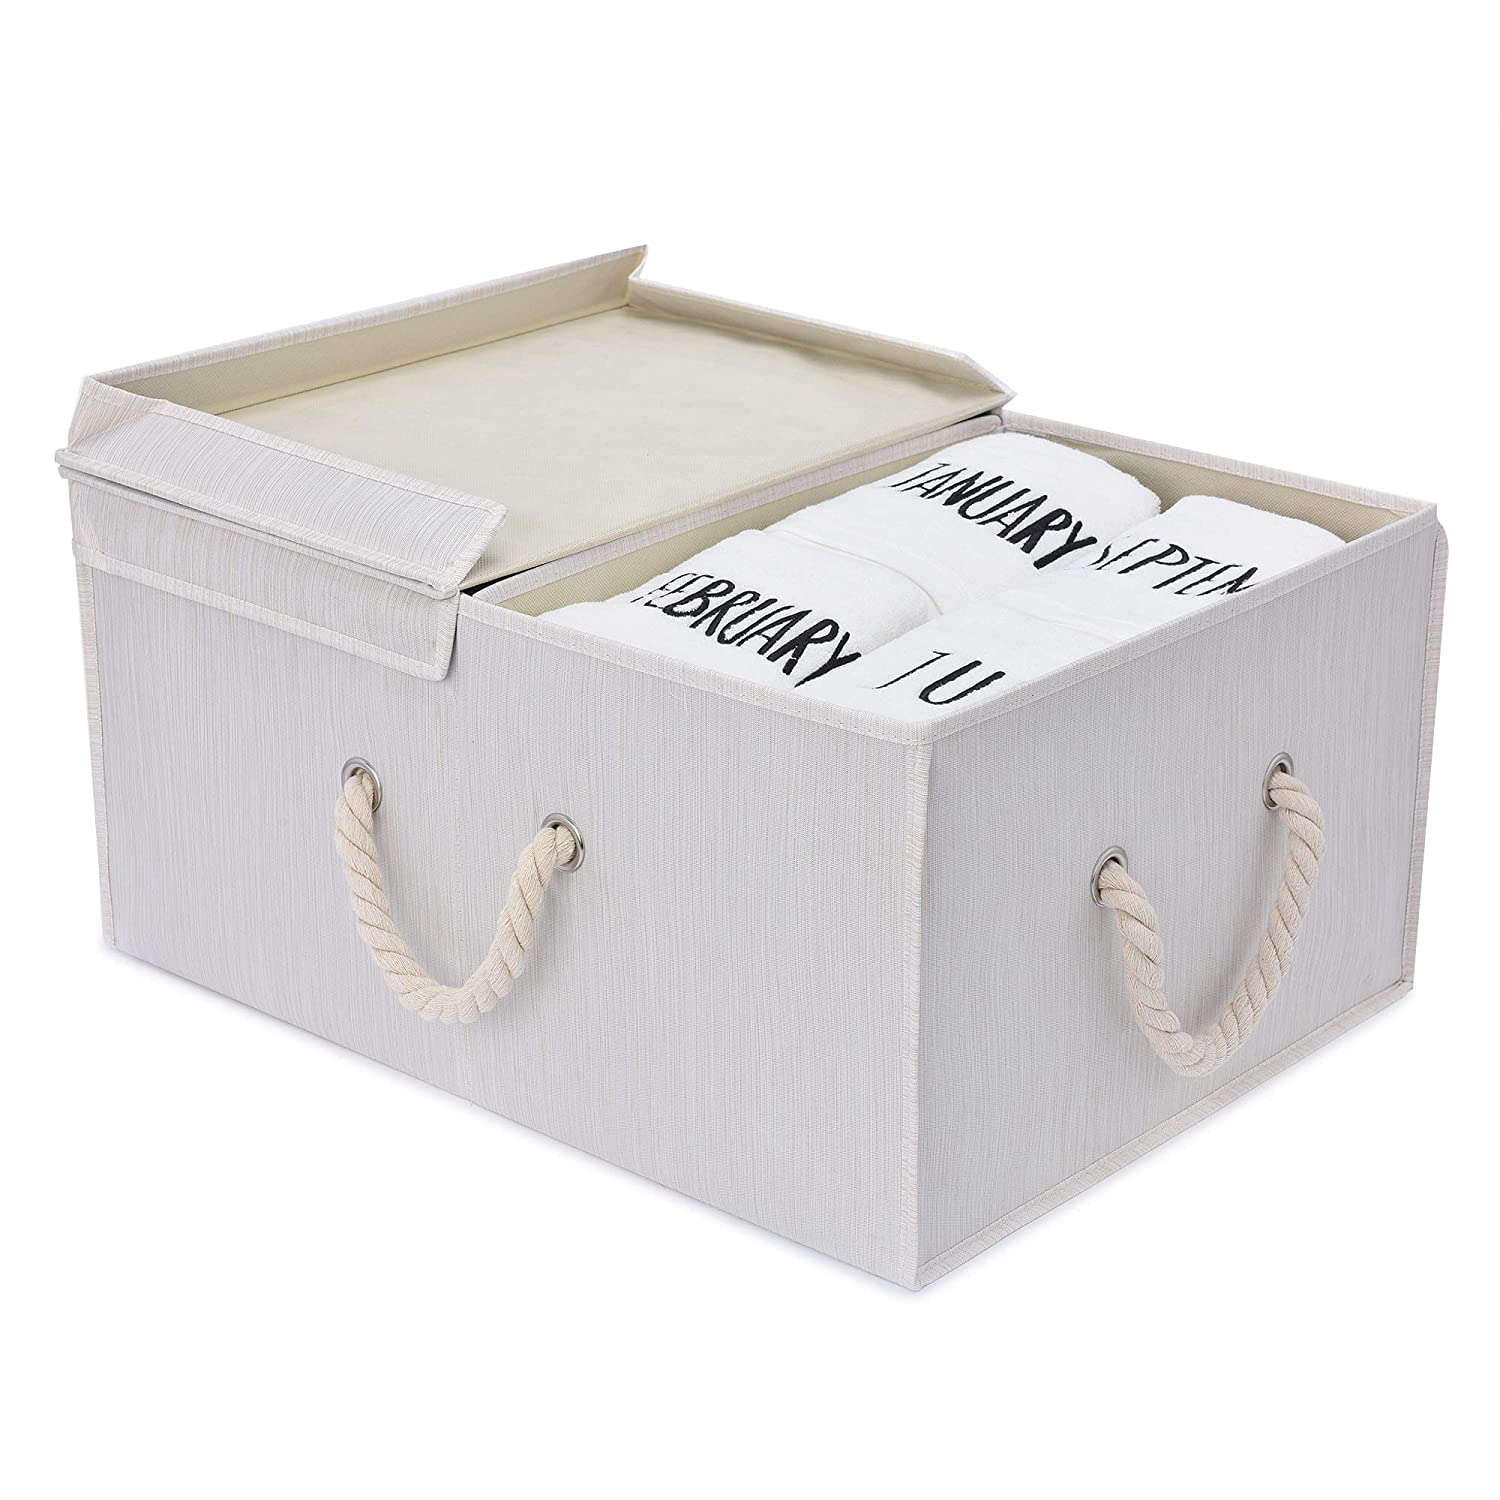 StorageWorks 65L Storage Box Cloth Box with Double-Open Lid and Strong Cotton Rope Handle, Gray, Bamboo Style, Jumbo